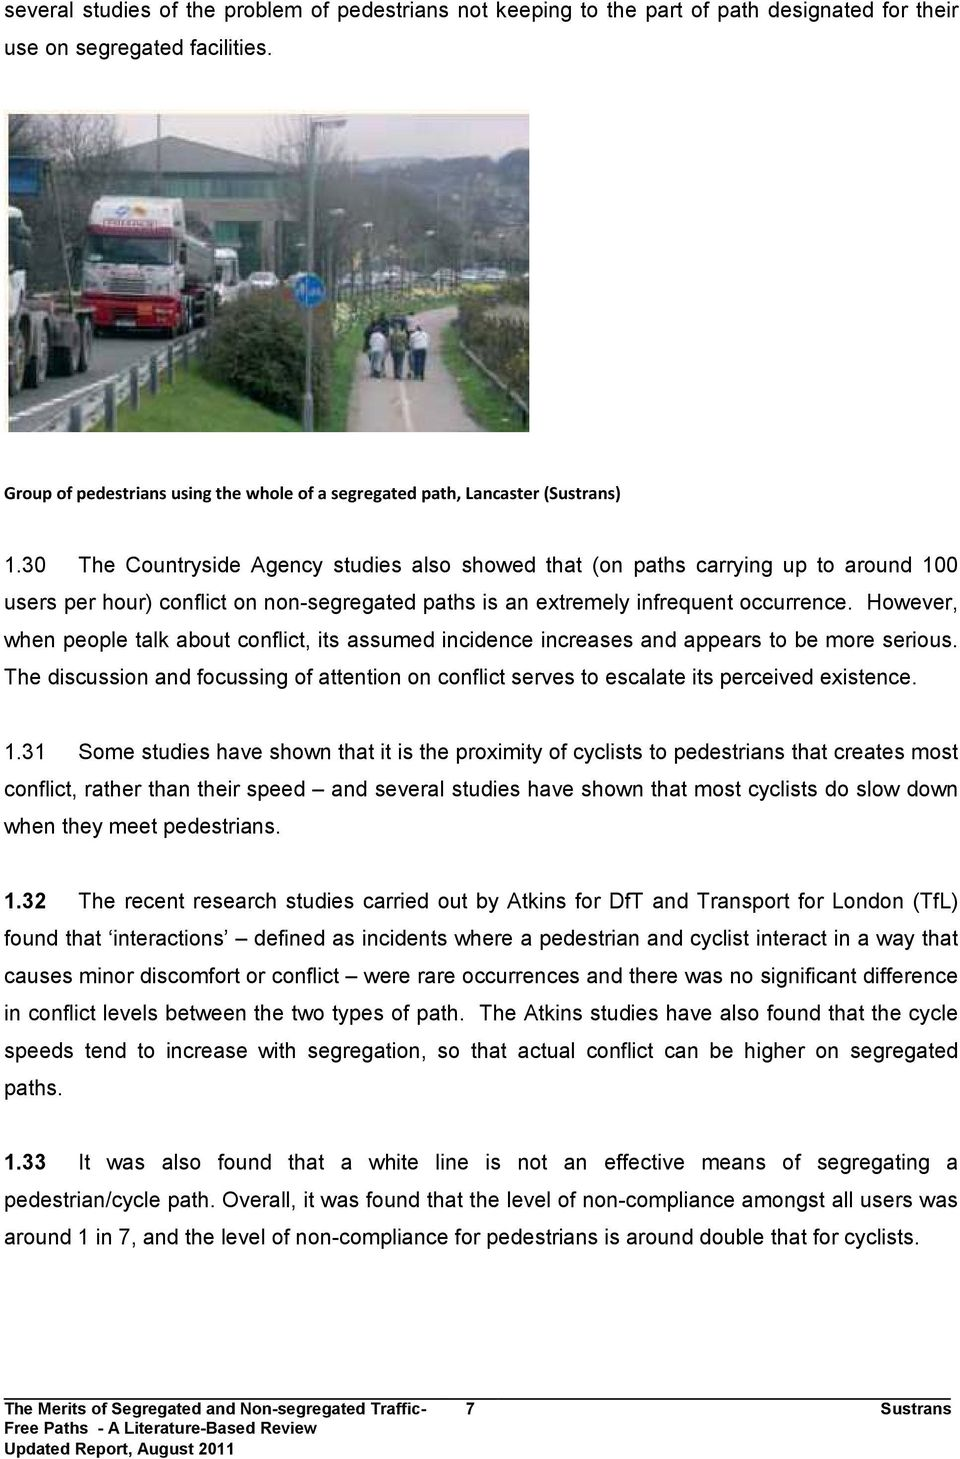 30 The Countryside Agency studies also showed that (on paths carrying up to around 100 users per hour) conflict on non-segregated paths is an extremely infrequent occurrence.